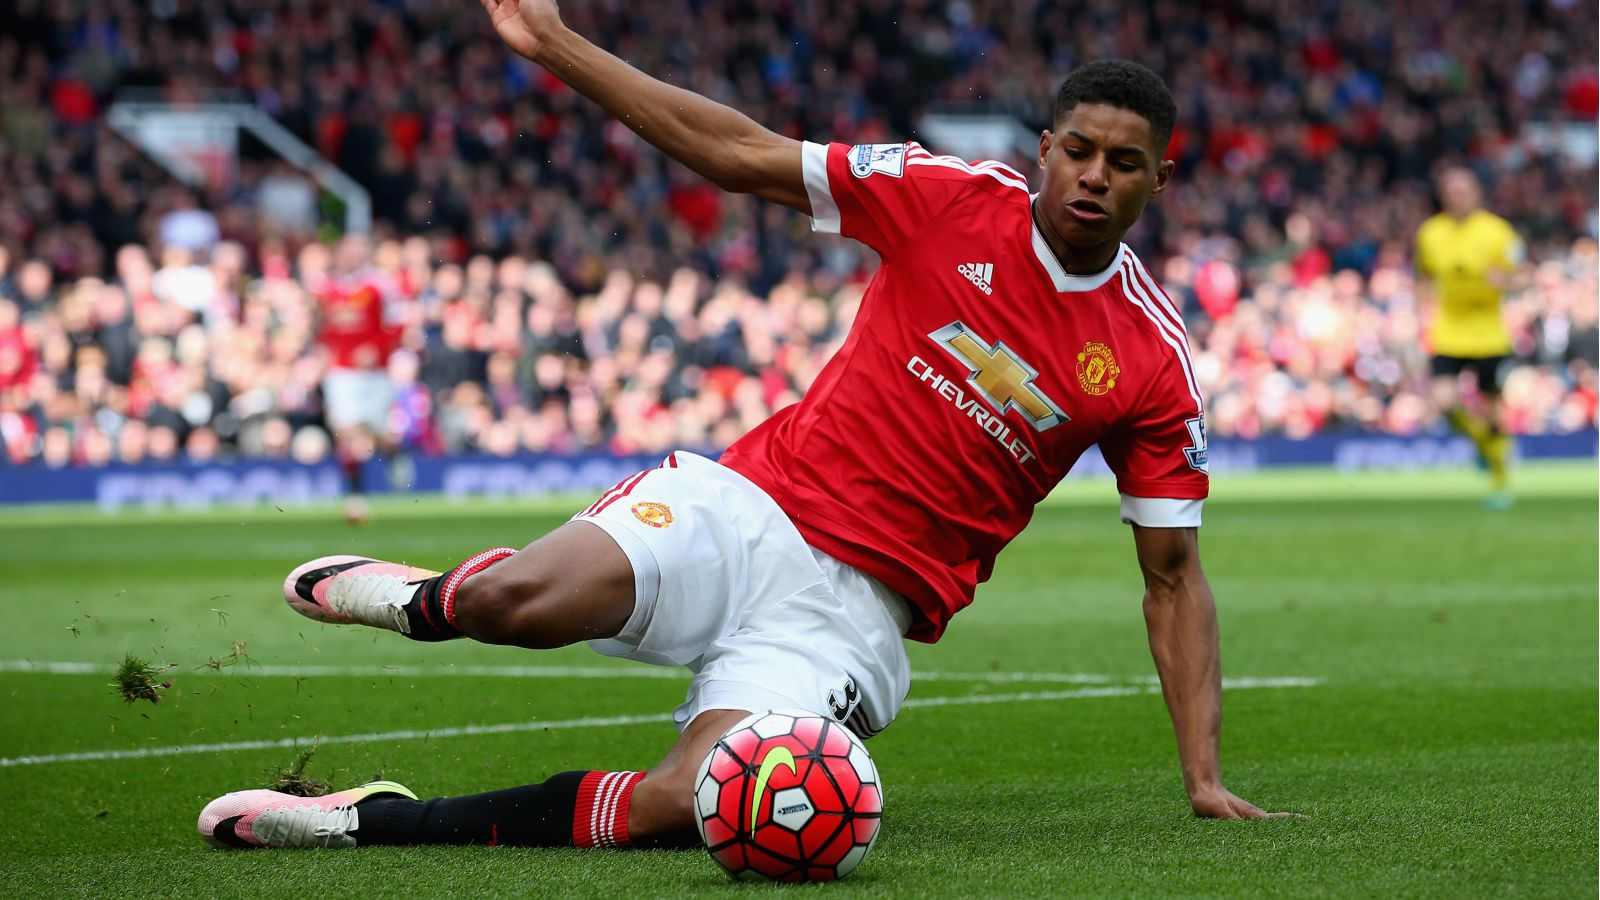 United youngster Rashford named in 26-man England squad